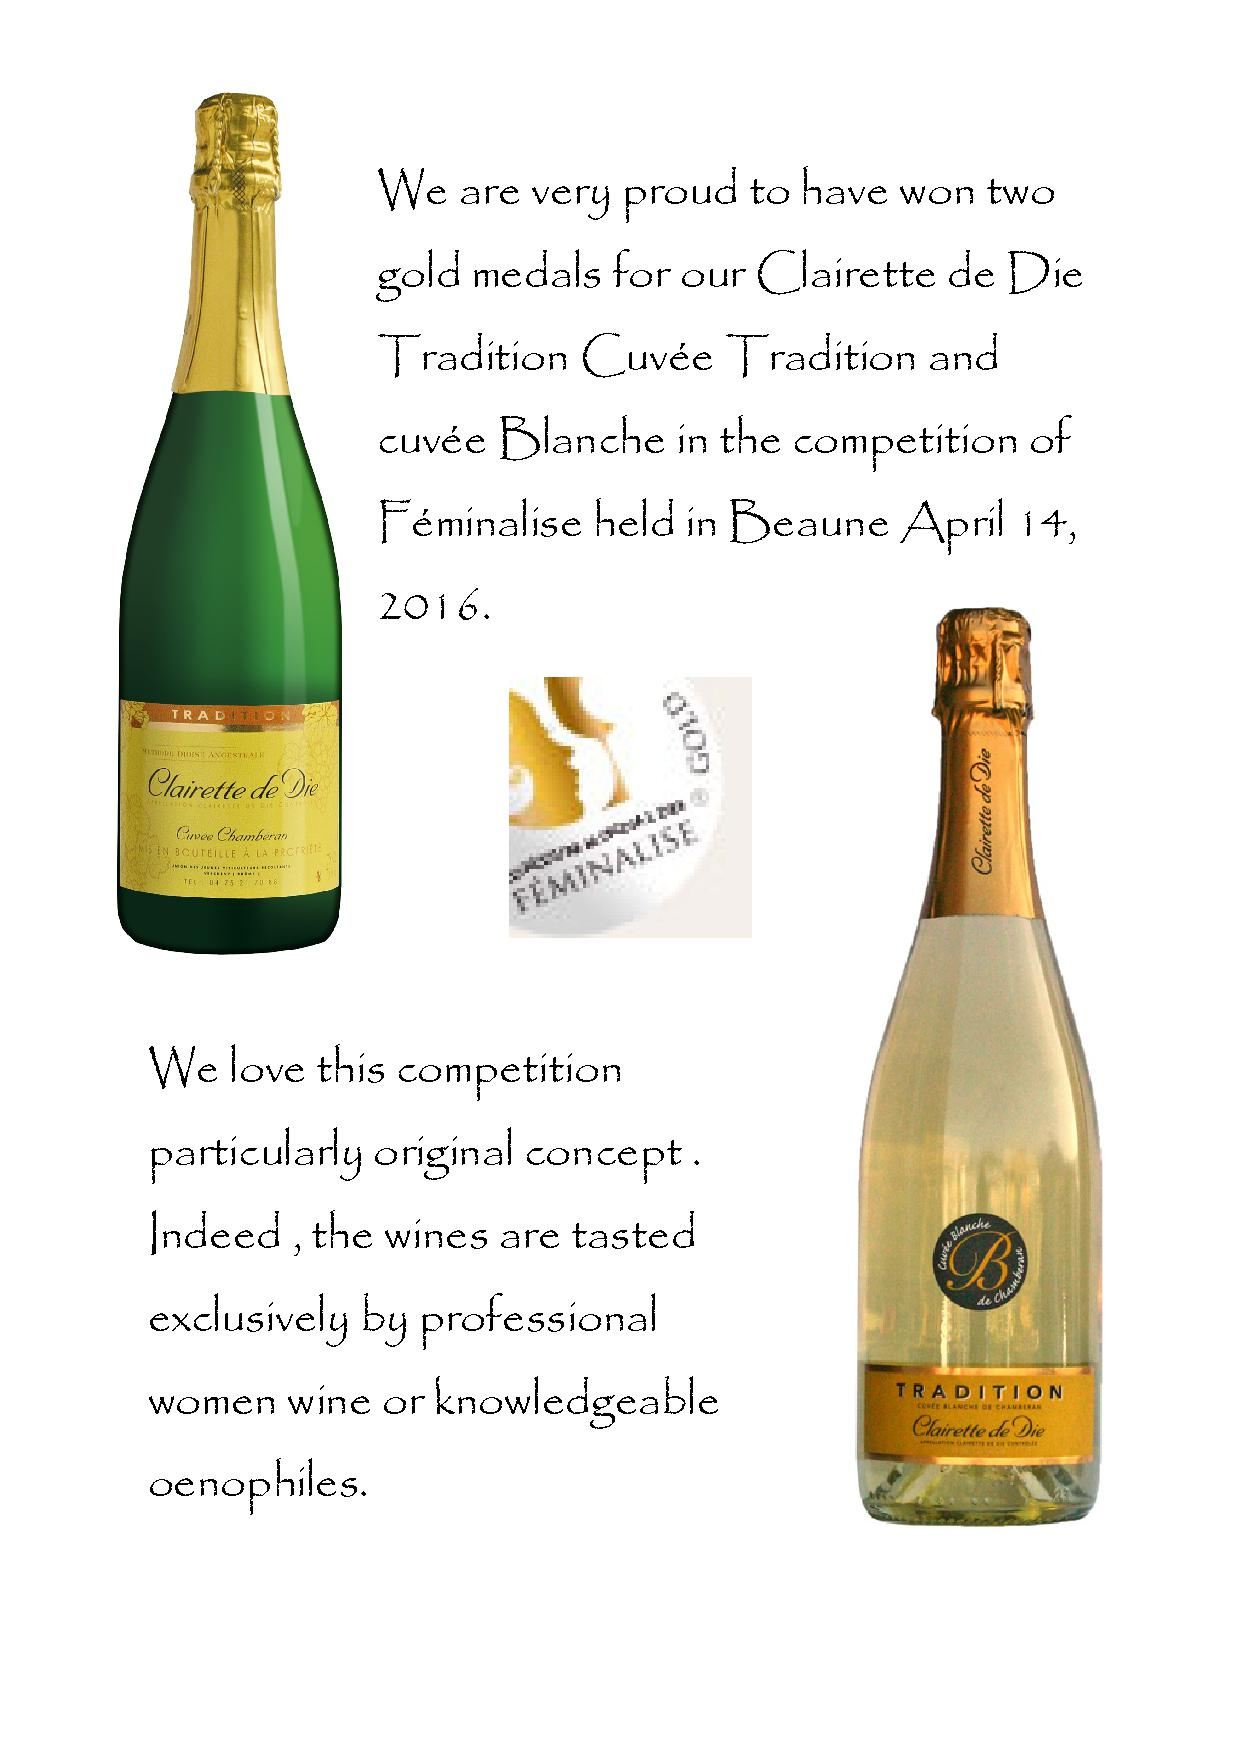 2 gold medal for our Clairette de Die Tradition in the competition of Feminalise